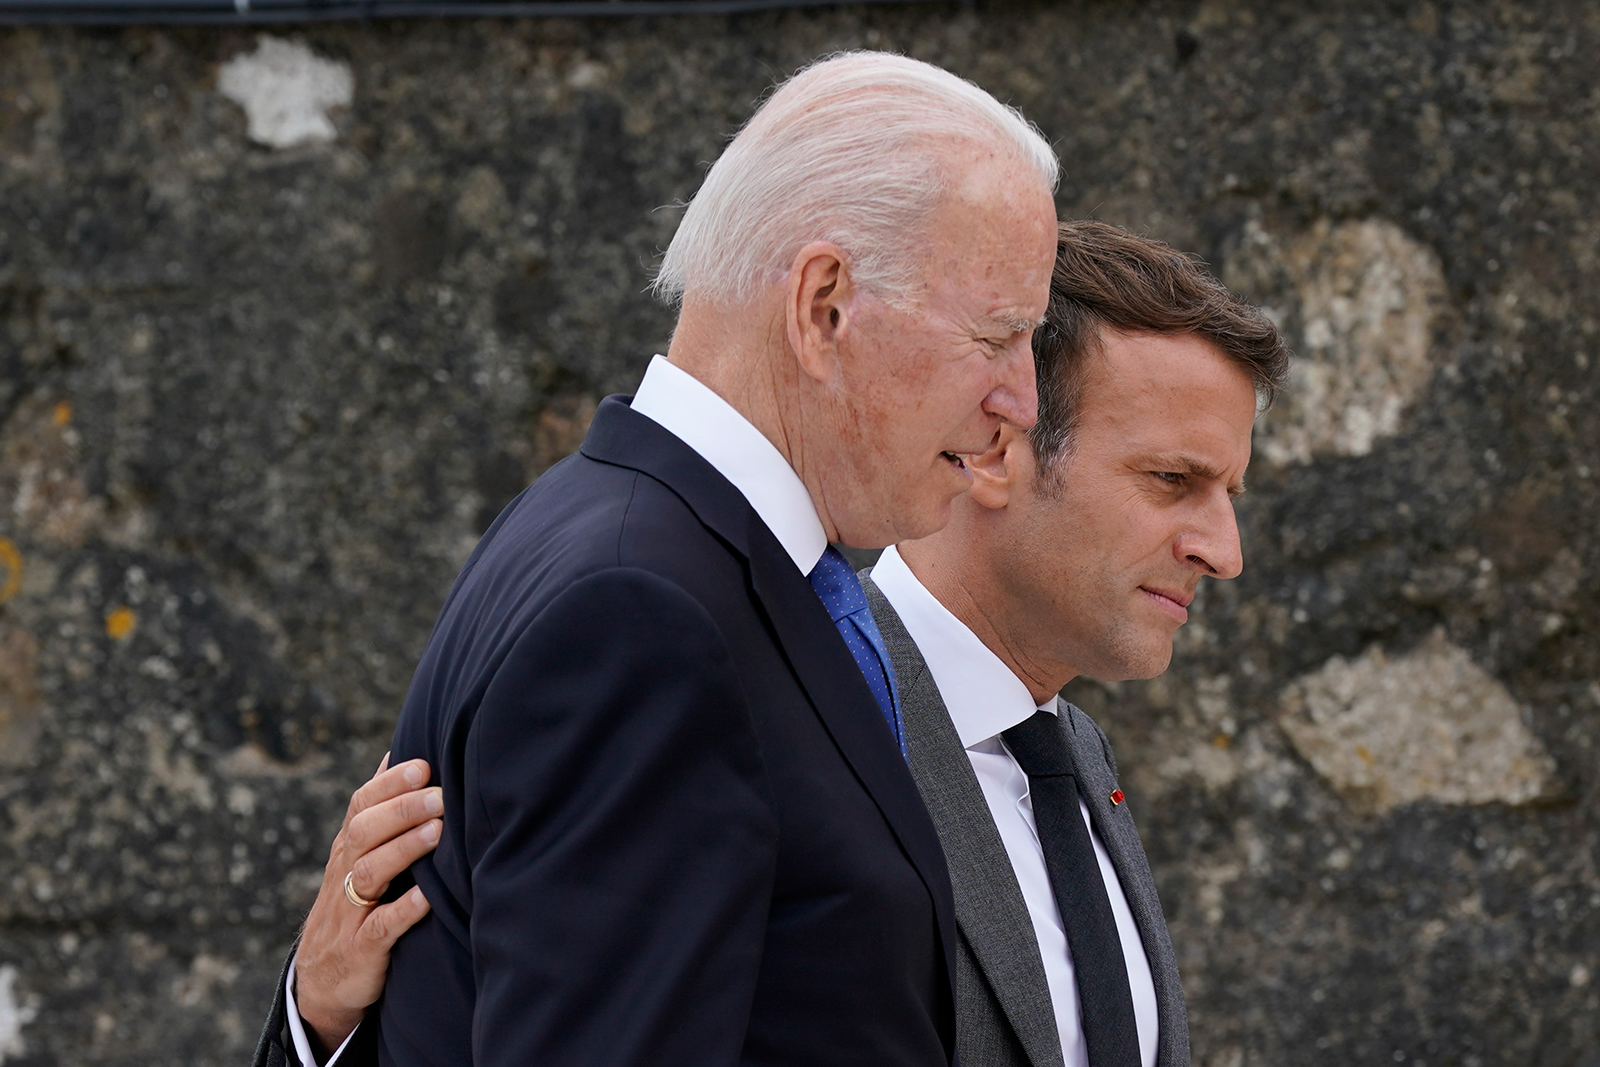 President Joe Biden speaks with French President Emmanuel Macron after posing for the G-7 family photo with guests at the G-7 summit on Friday.